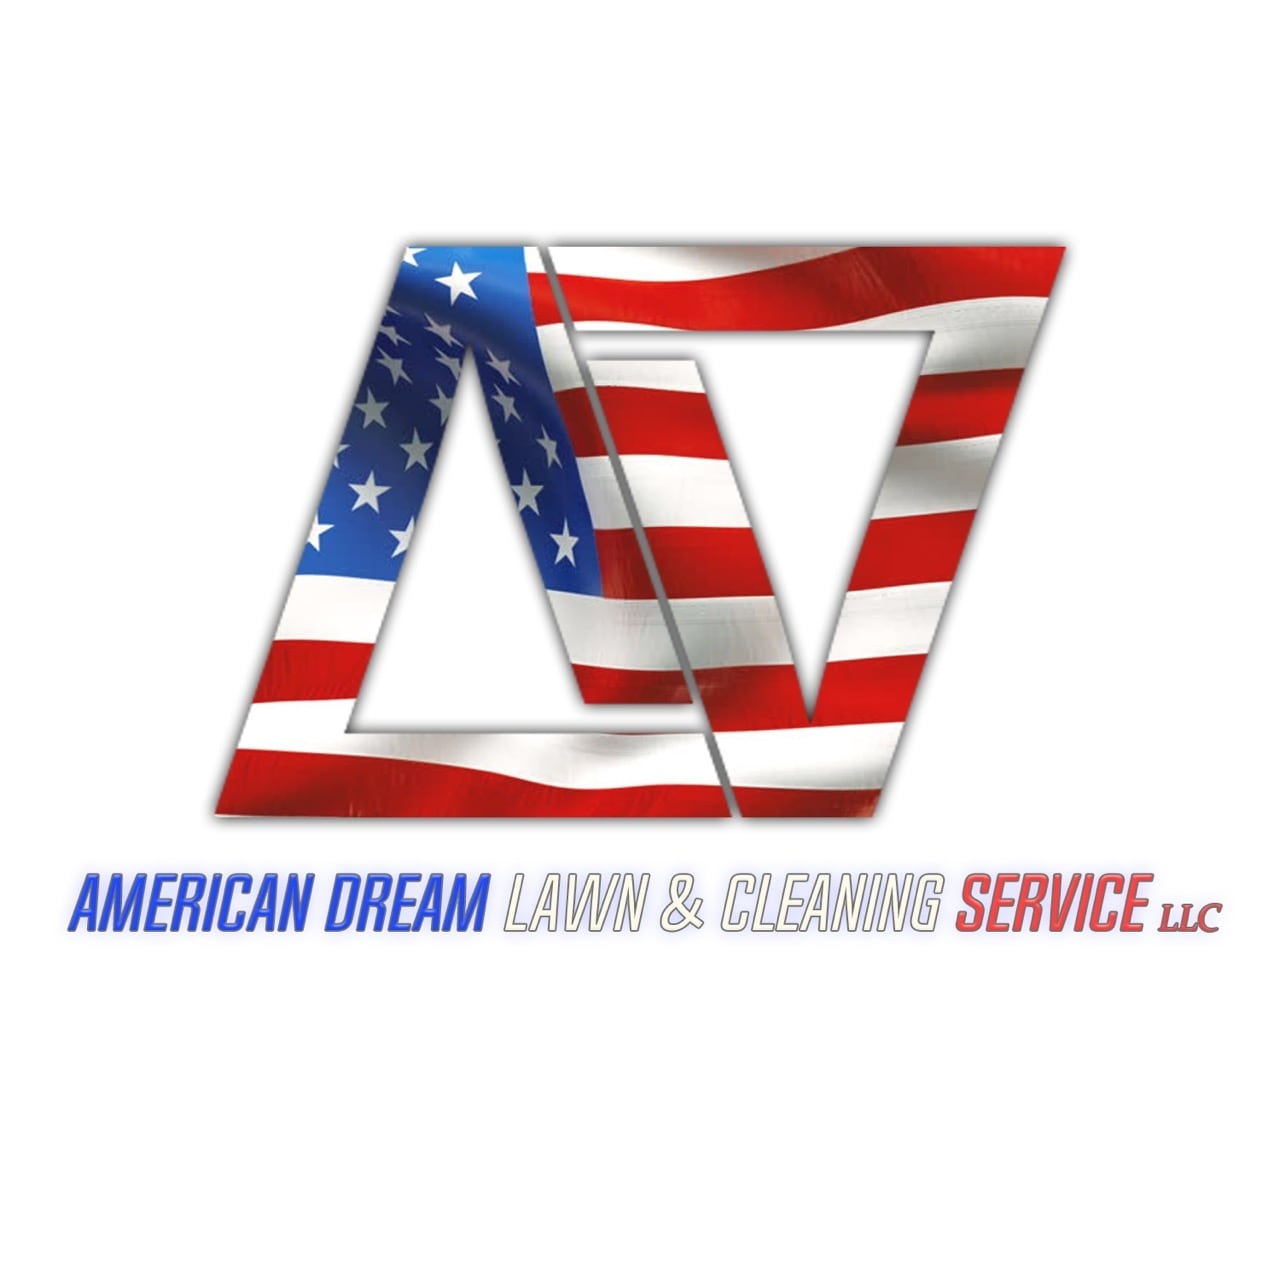 American Dream Lawn & Cleaning Service LLC